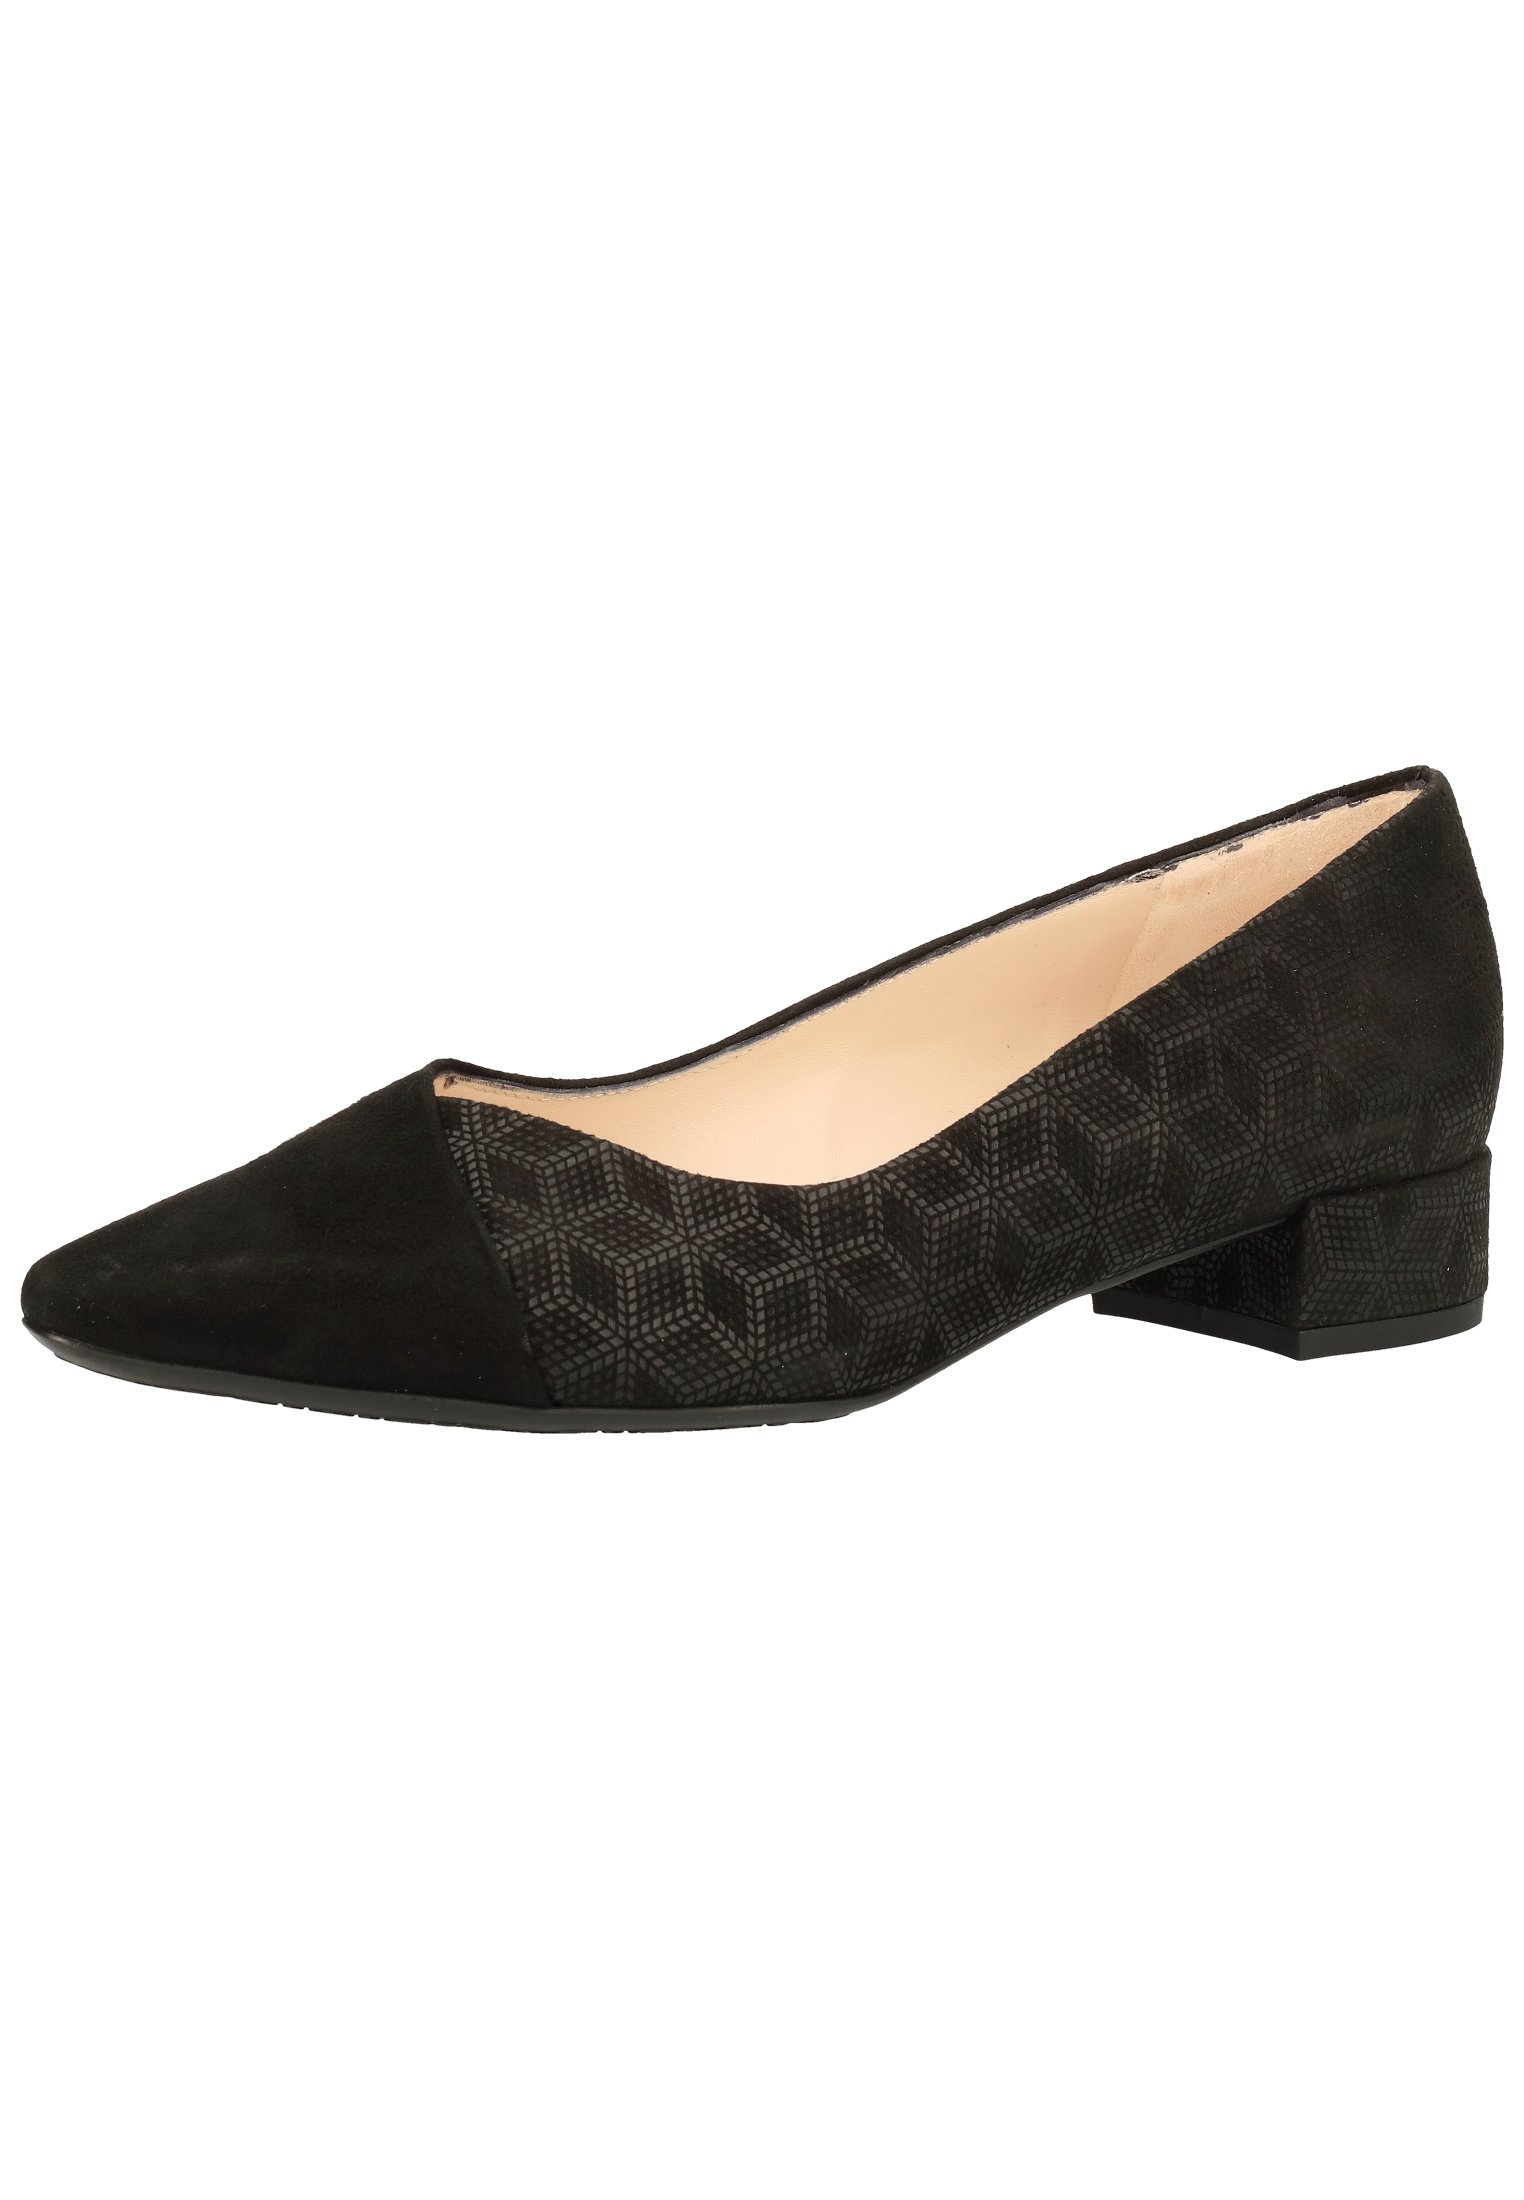 Peter Kaiser Pumps - black